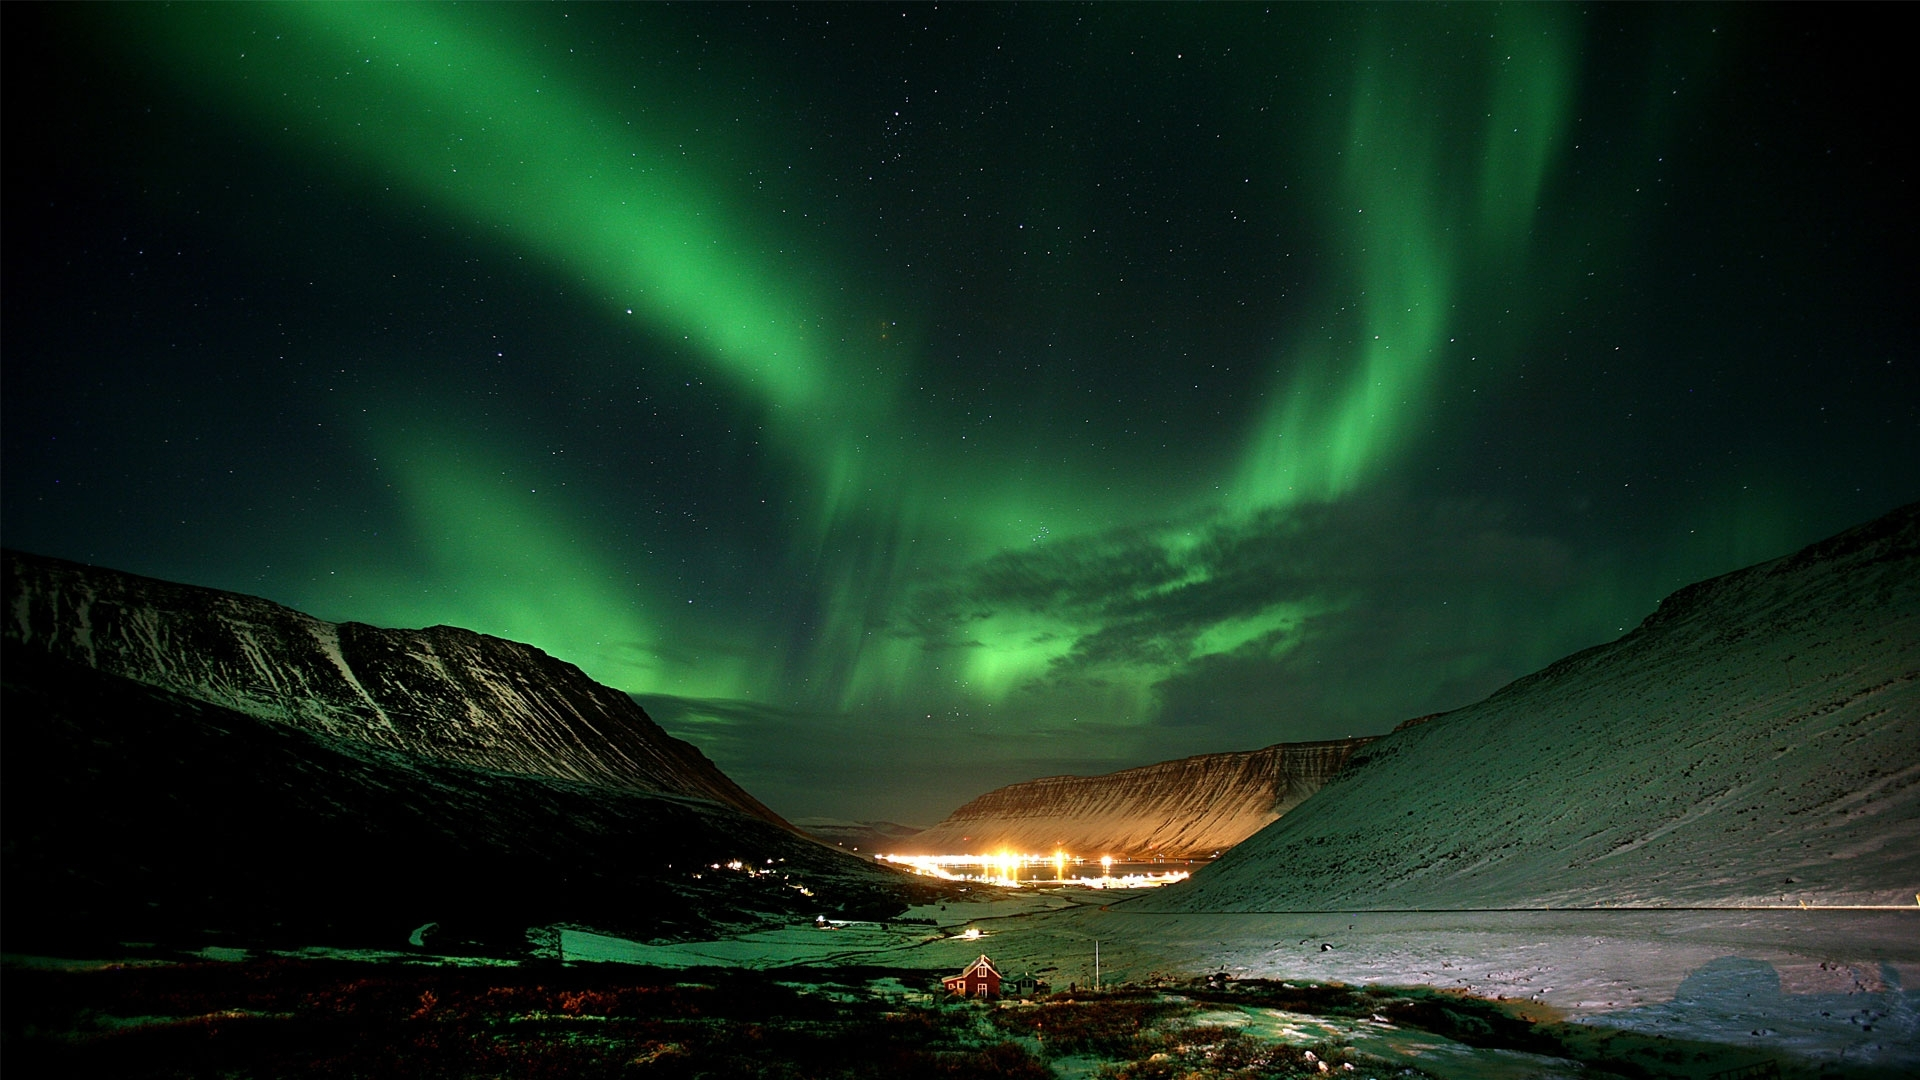 download northern lights pictures 21163 1920x1080 px high resolution